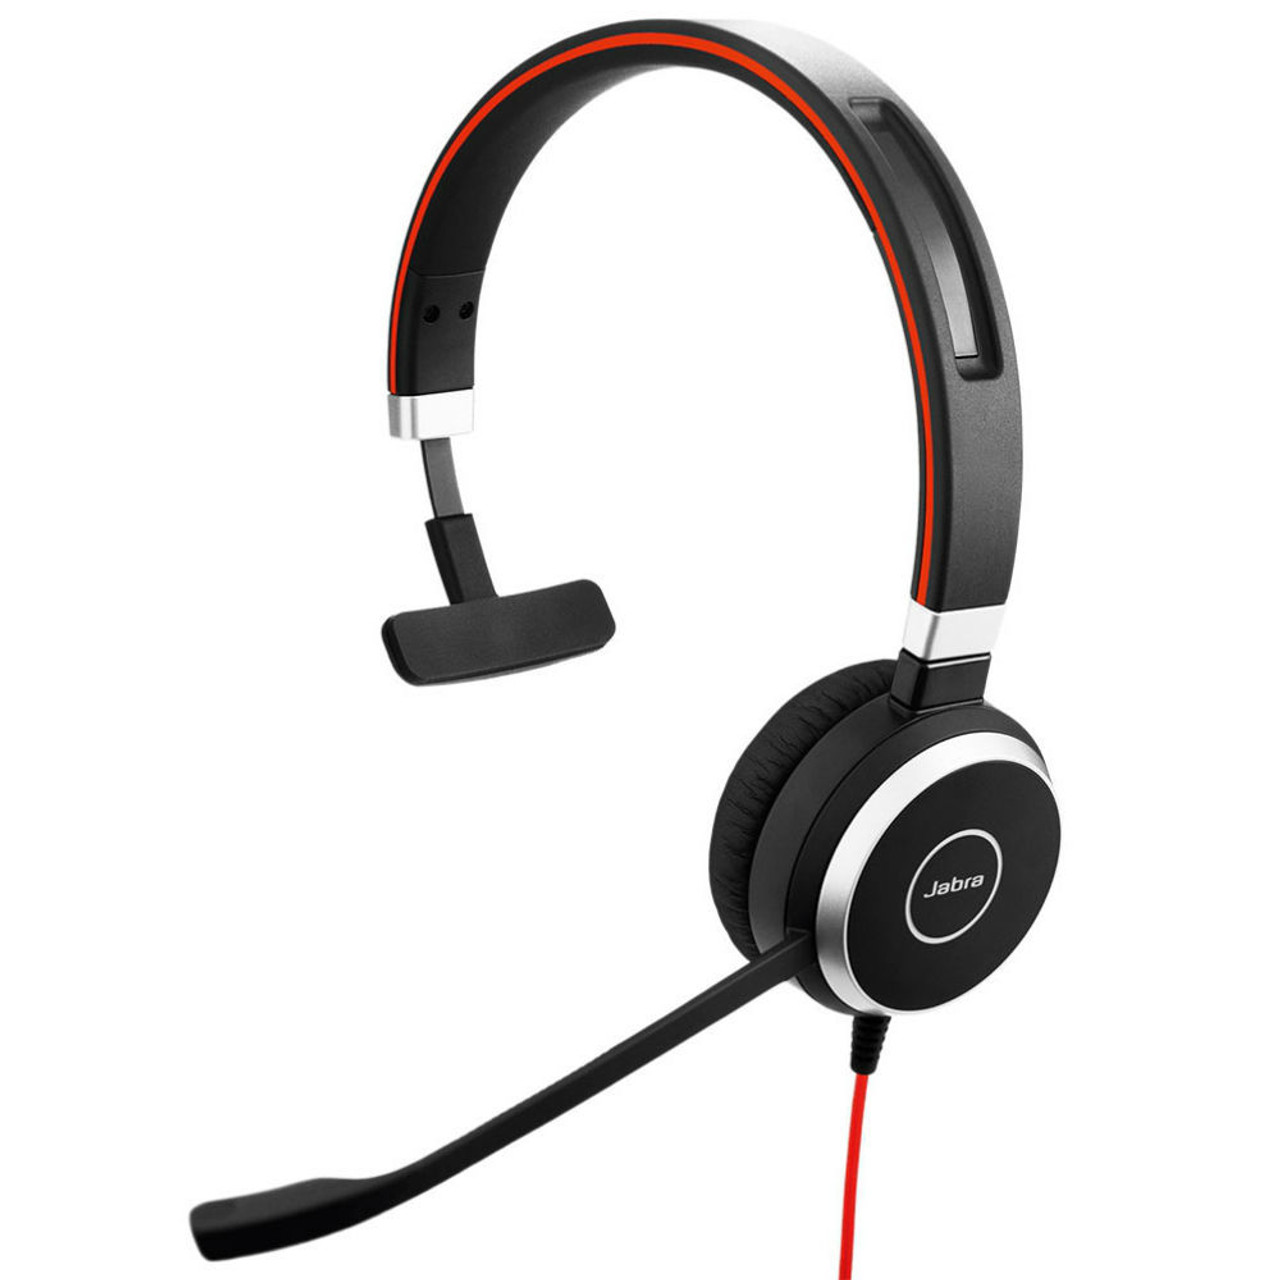 3.5mm Headsets